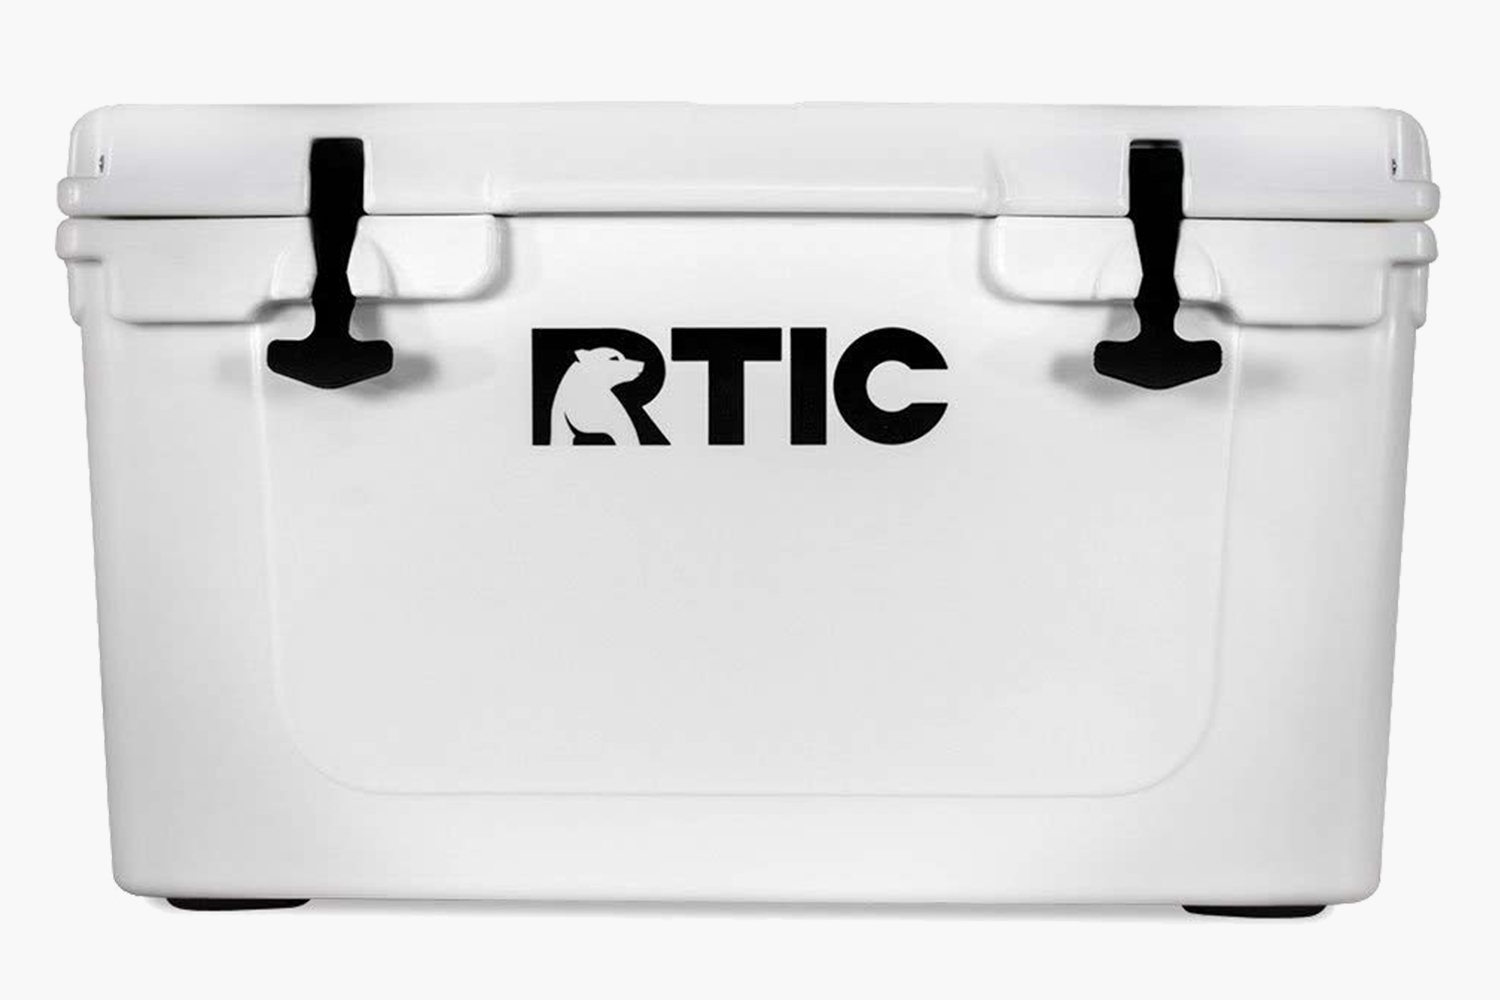 One of the hard-side RTIC coolers discounted in the Amazon sale. (Credit: Amazon)